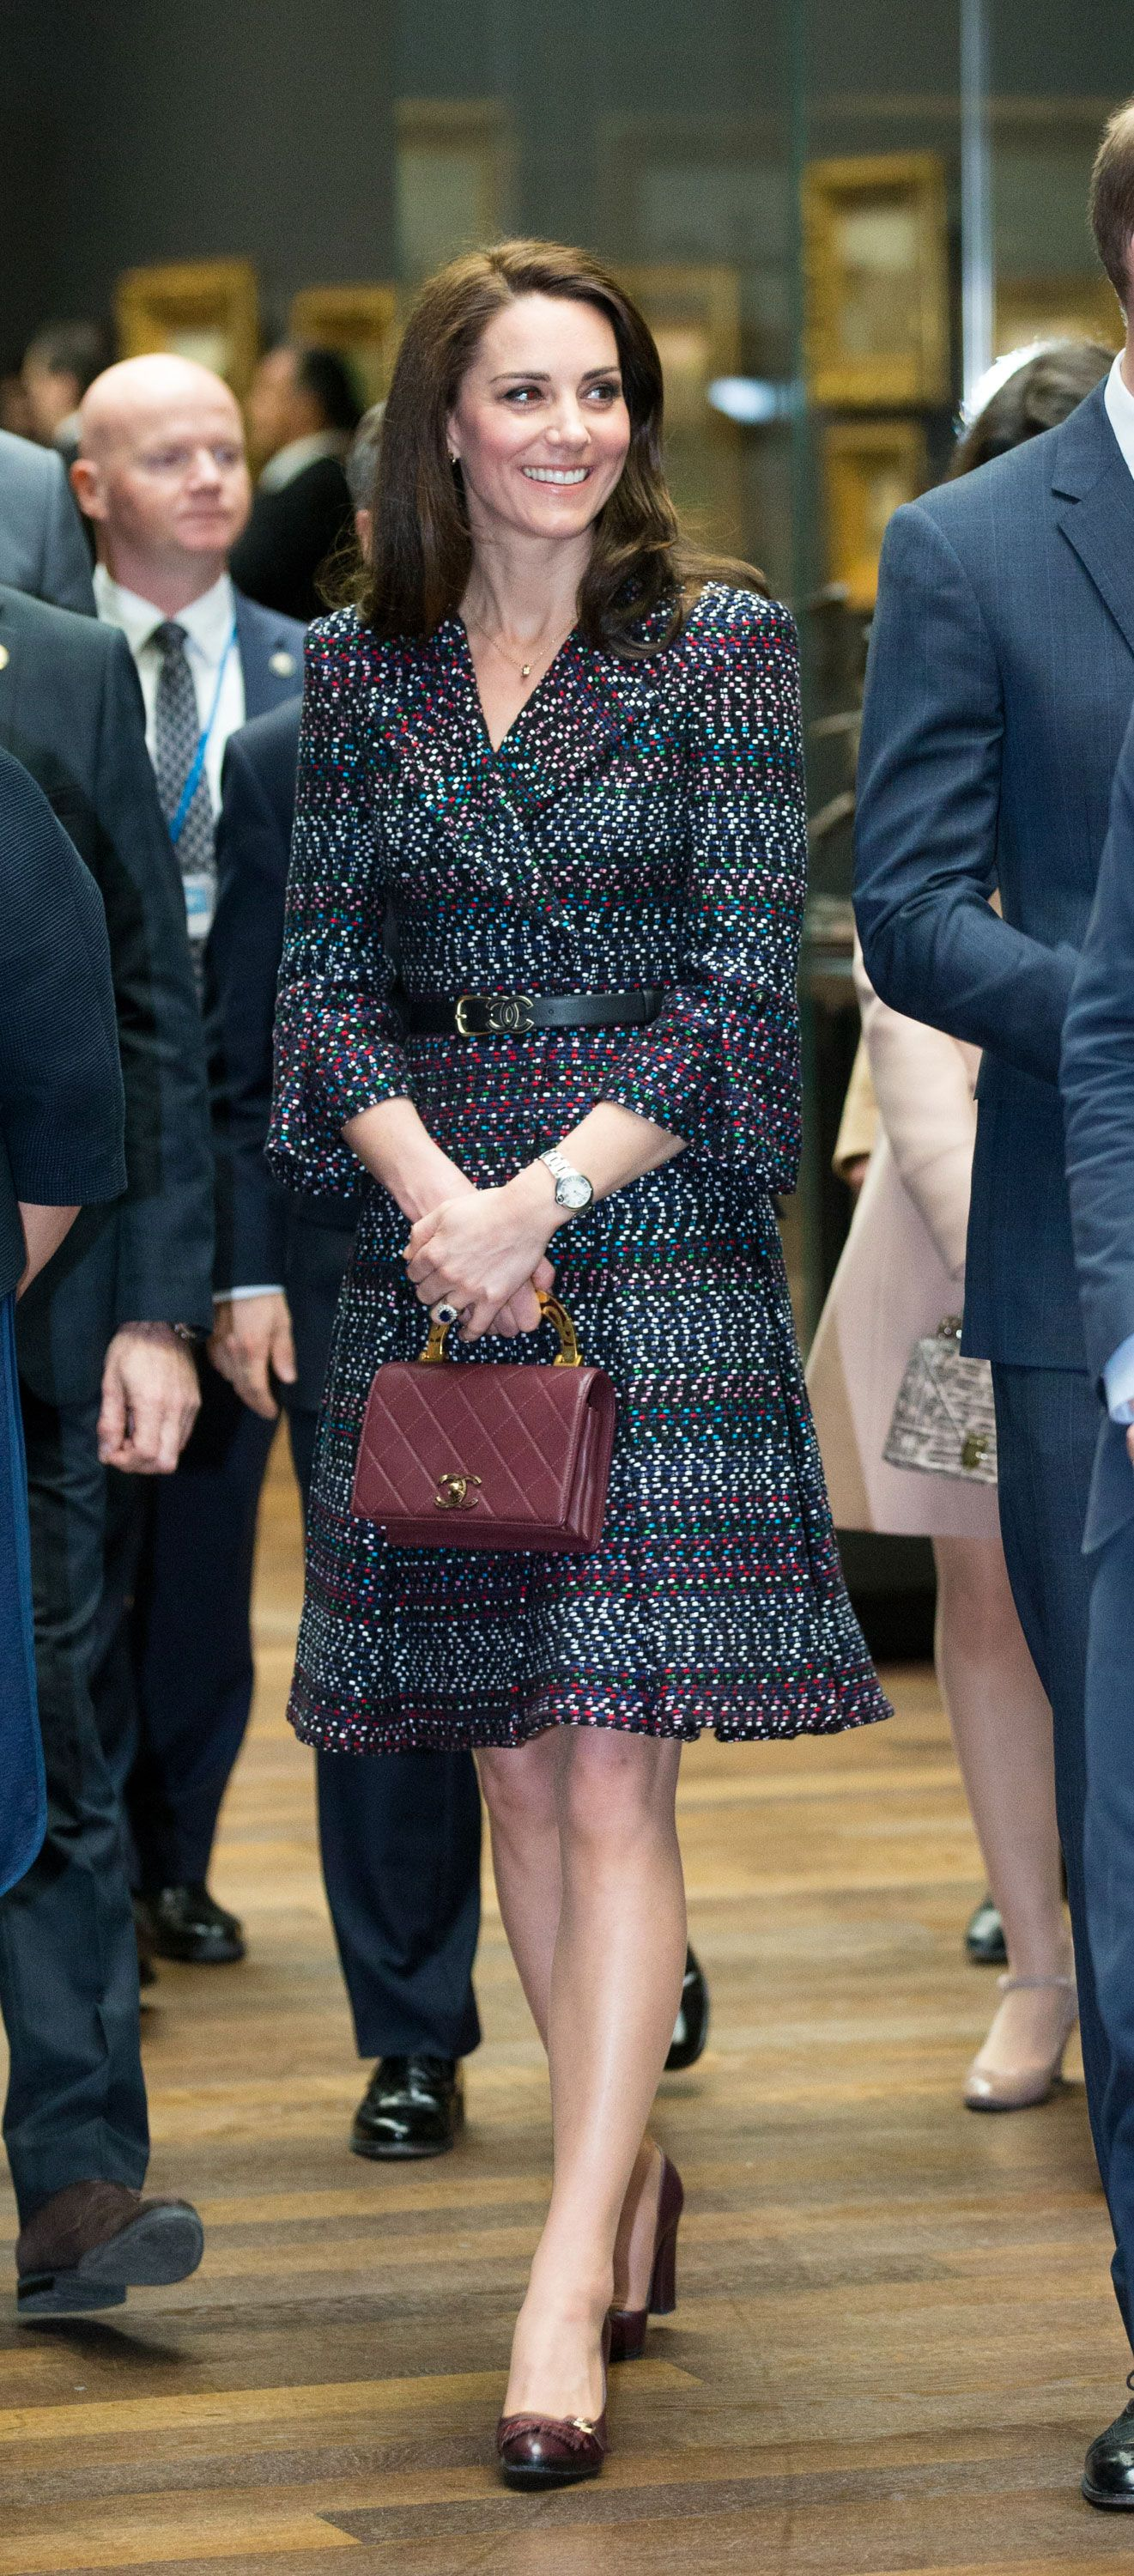 43b4a093b6e1 Kate Middleton style: The Duchess' best ever dresses and outfits